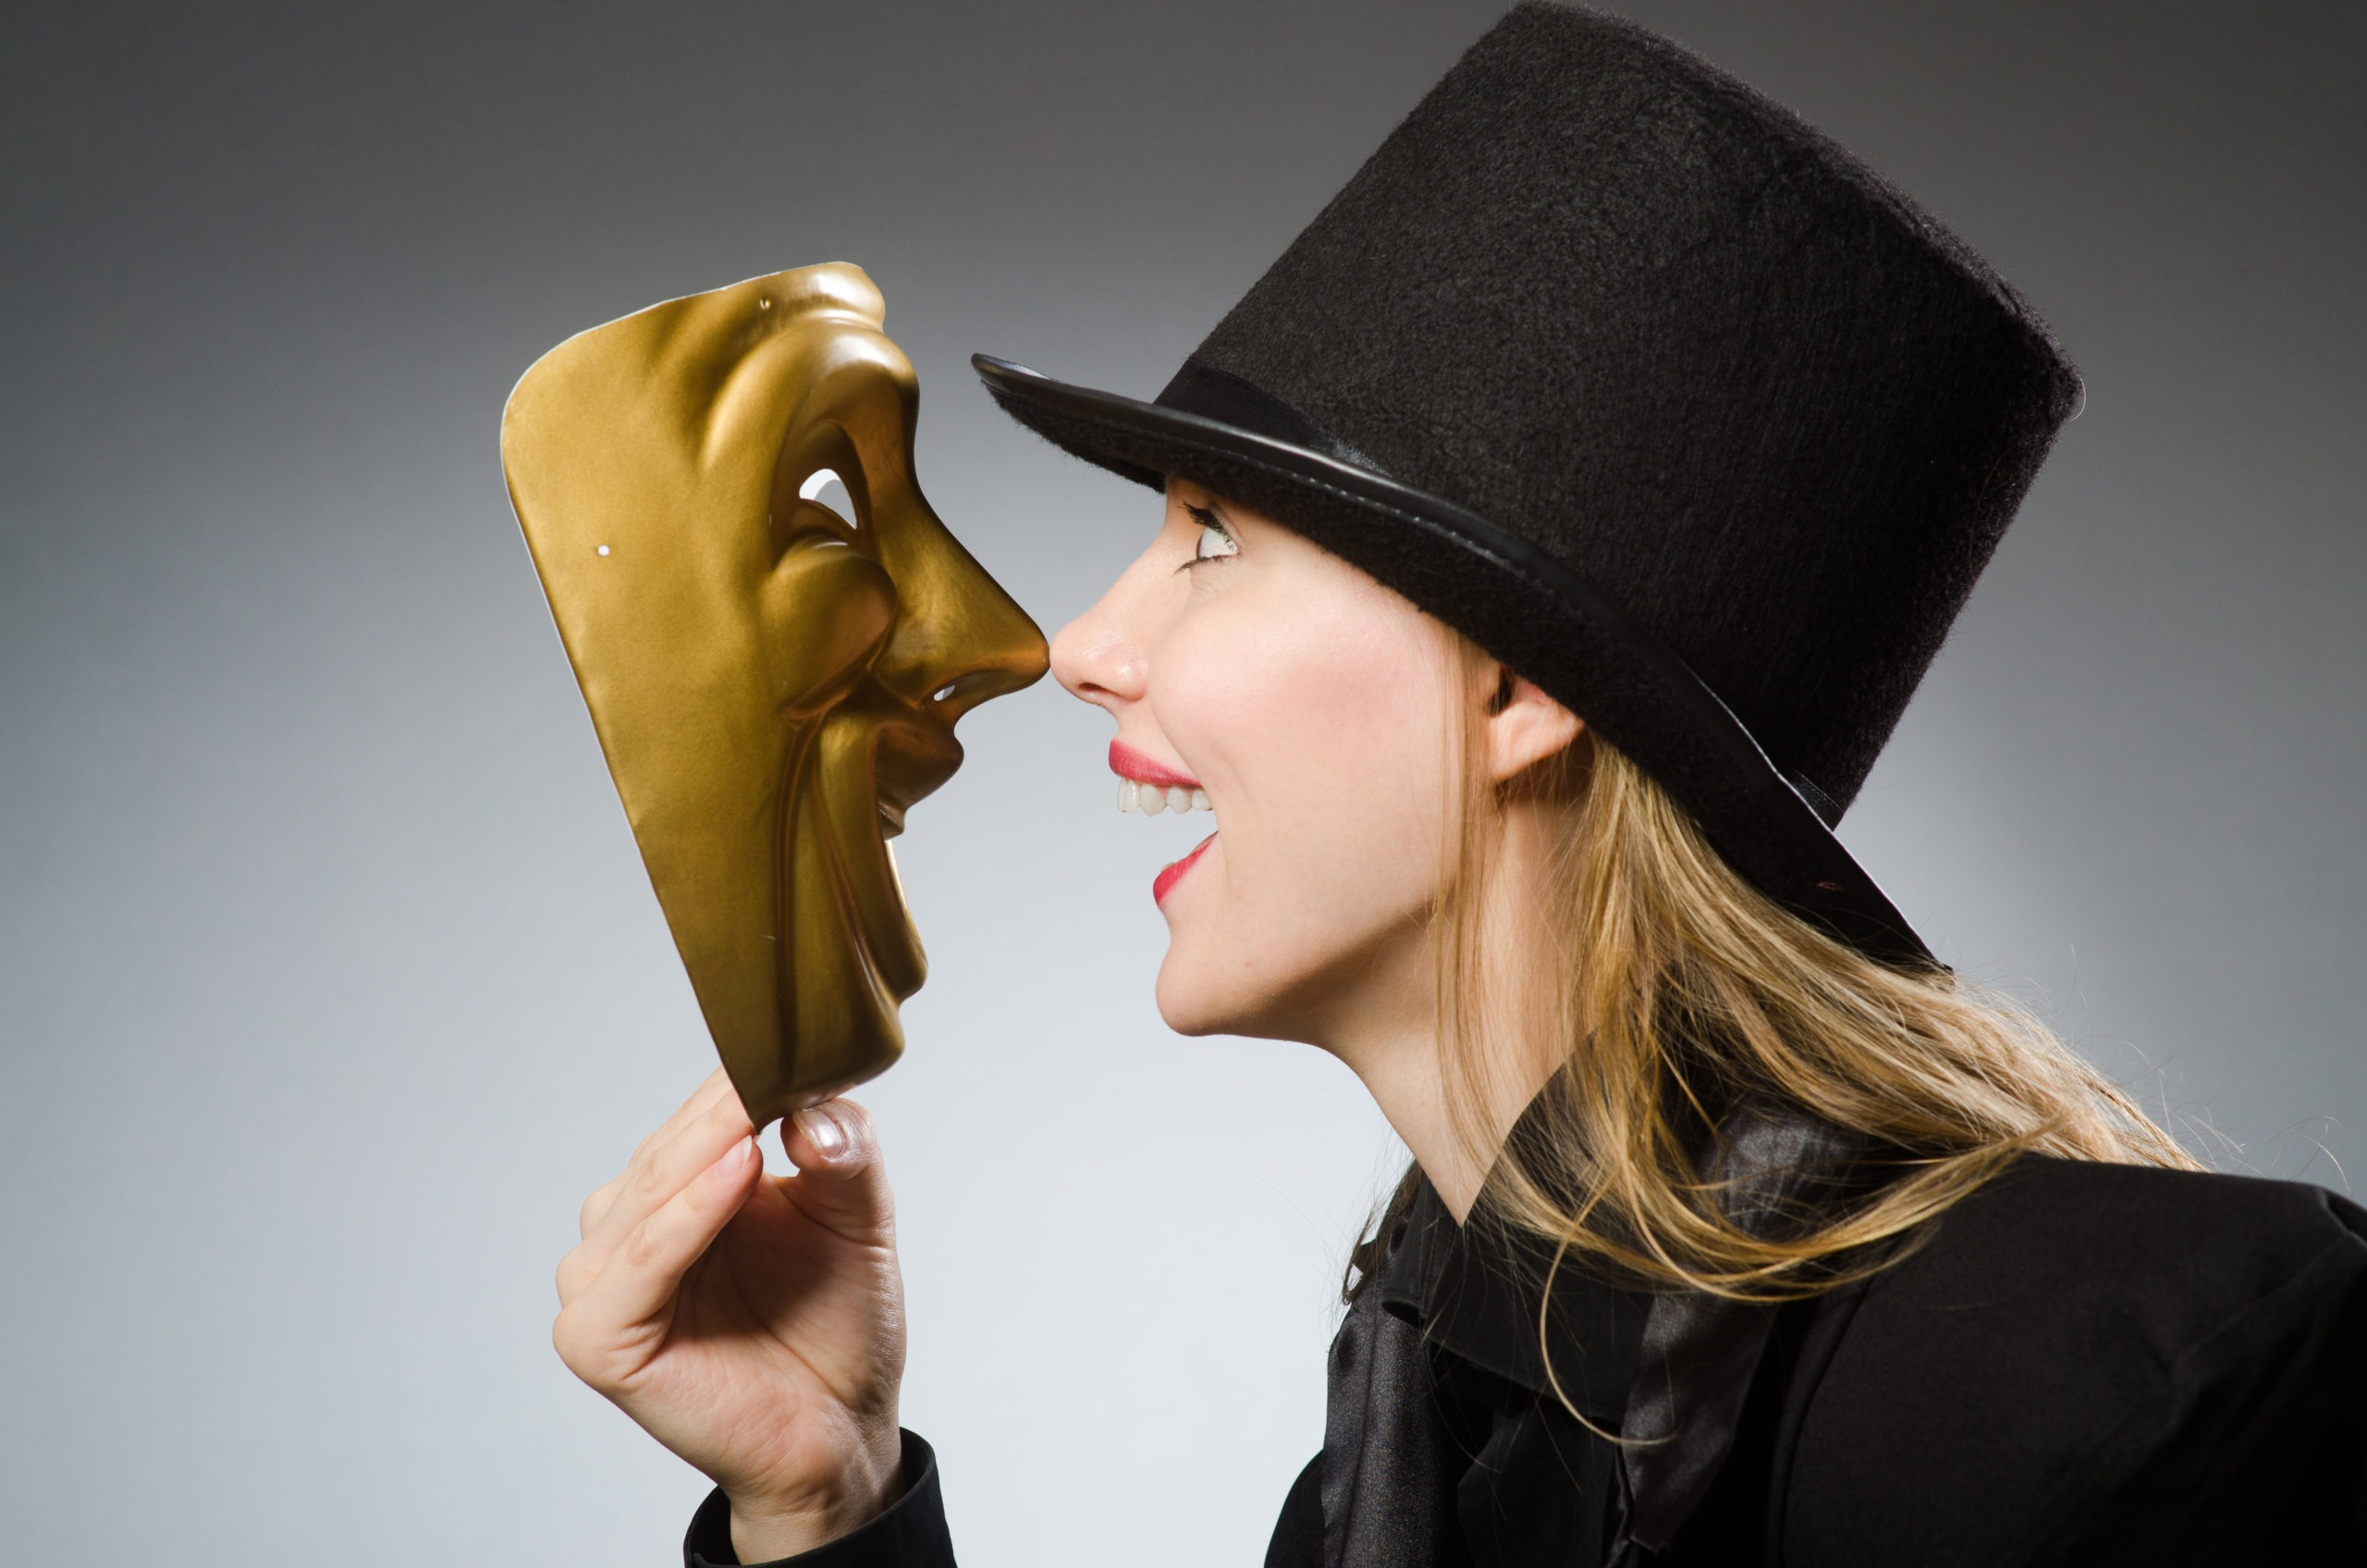 A white blond woman wearing a black top hat, smiling. She holds a golden theatre mask which also smiles